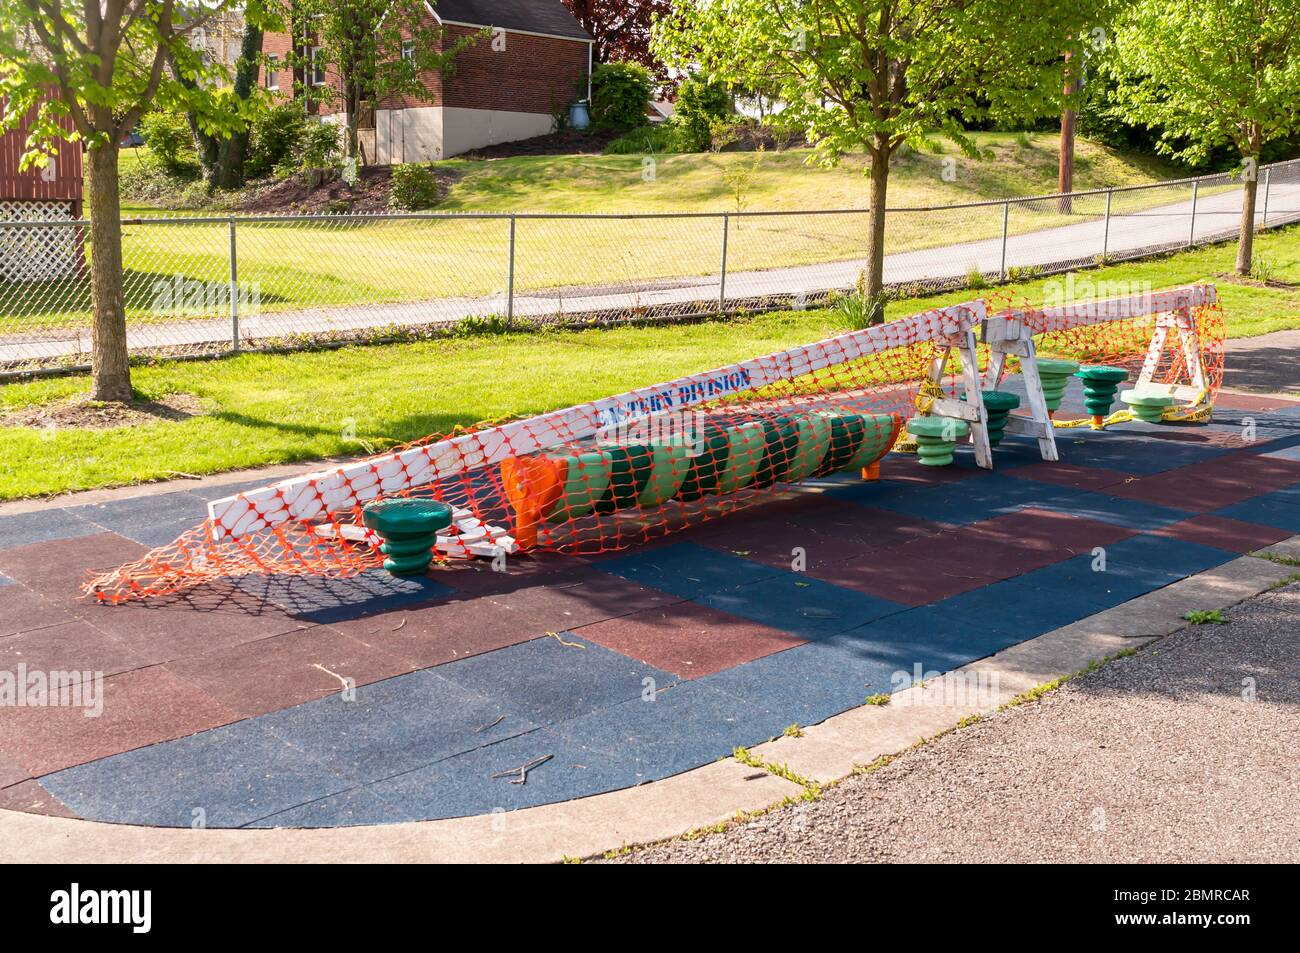 Playground equipment closed and roped off due to the Covid 19 pandemic at the Swisshelm Park playground, Pittsburgh, Pennsylvania, USA Stock Photo